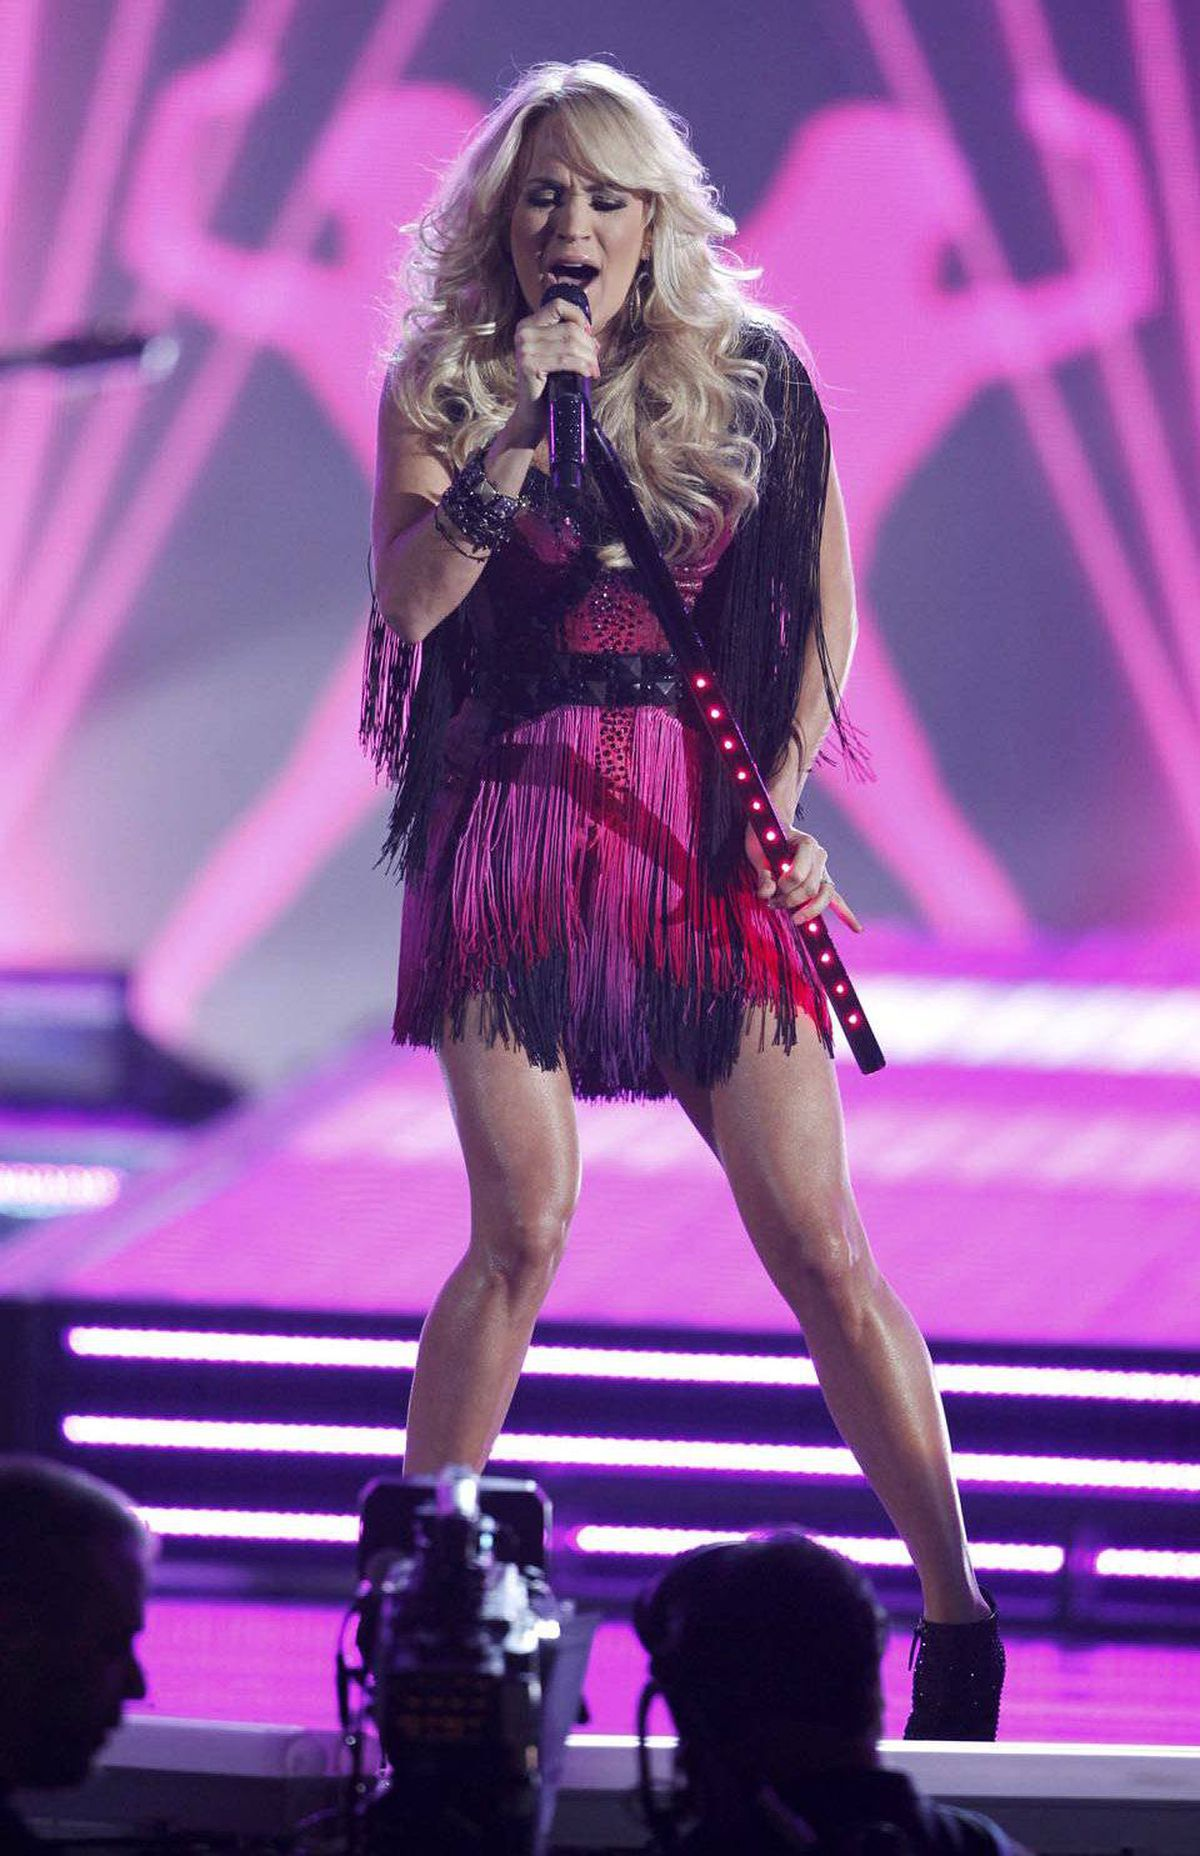 Singer Carrie Underwood struggles to co-ordinate her accessories with her fuchsia silhouettes at the Country Music Awards in Las Vegas.